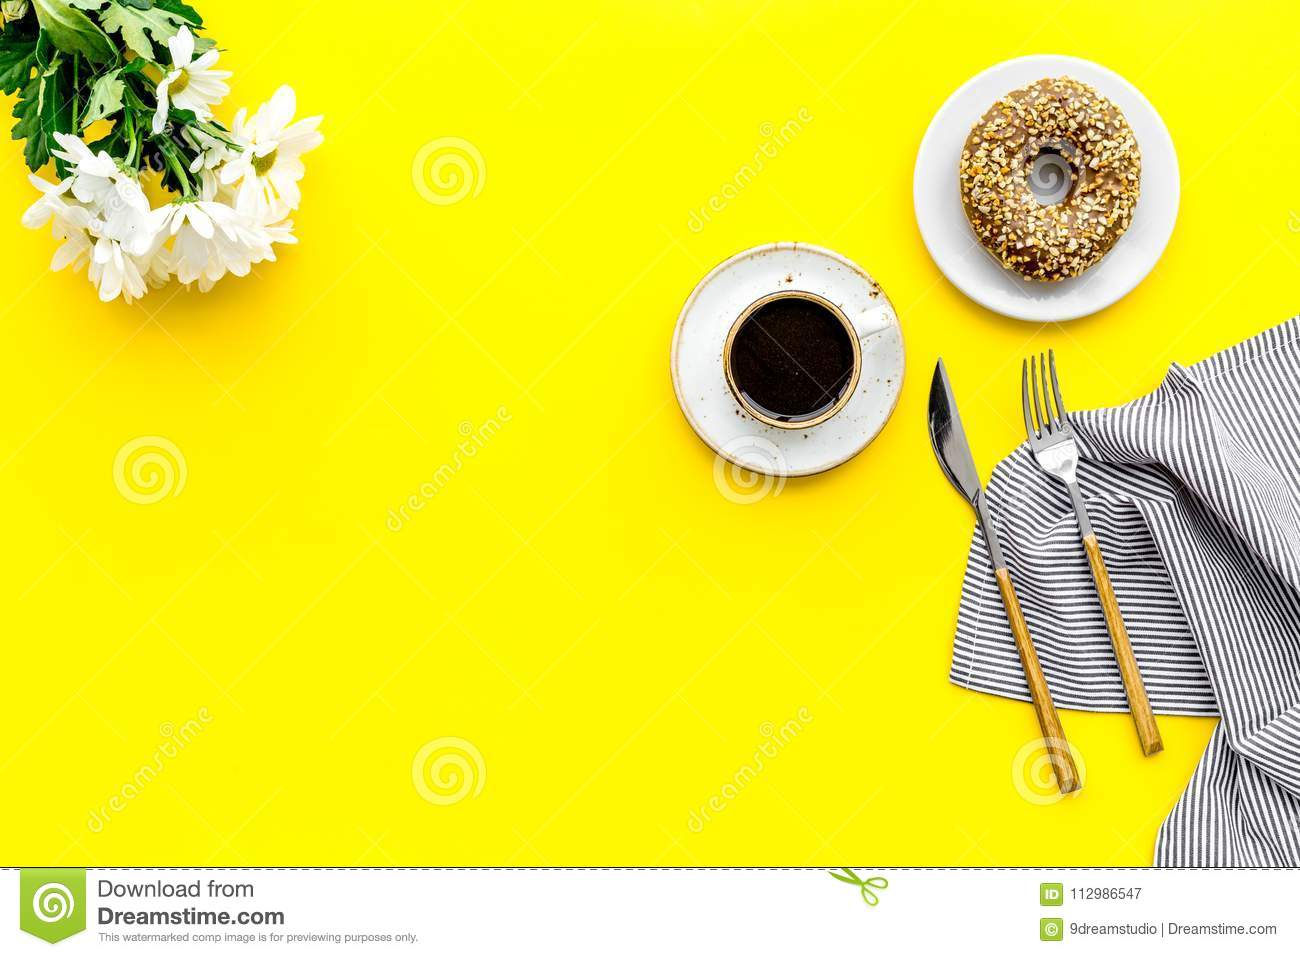 Breakfast with coffee, donuts and flowers on yellow background top view mockup